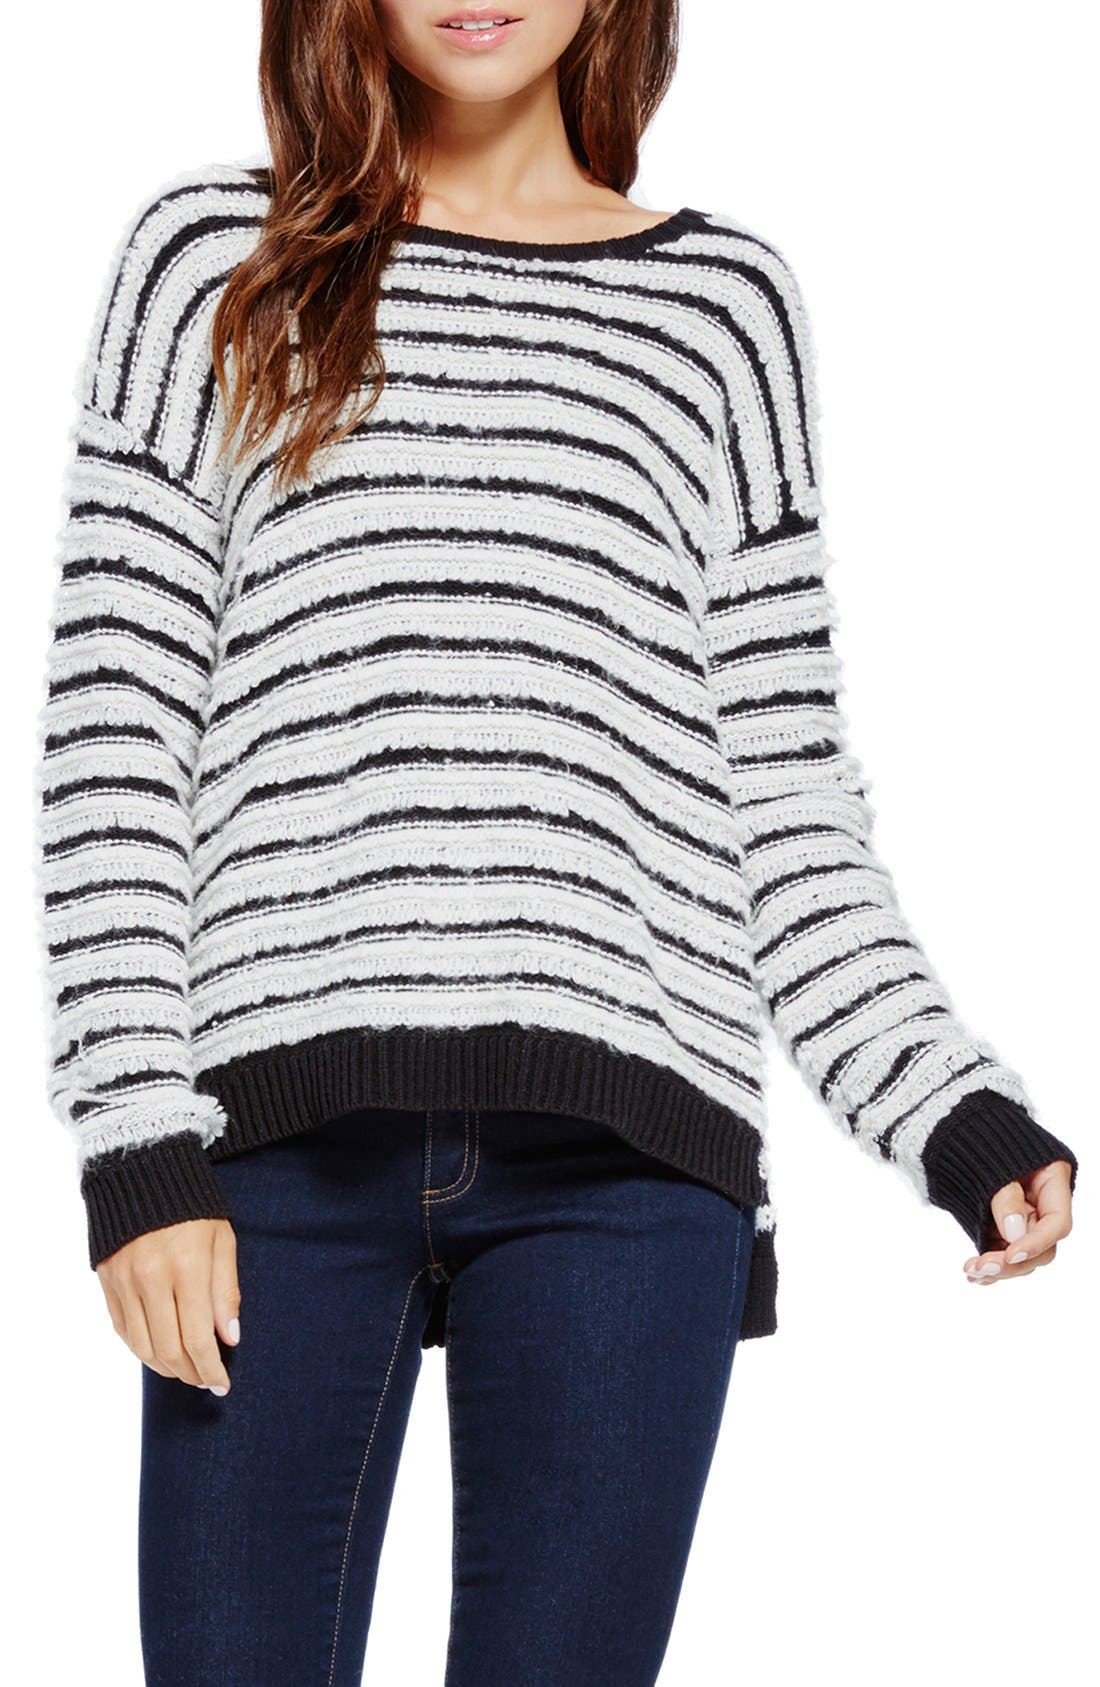 Alternate Image 1 Selected - Two by Vince Camuto Stripe Loopy Stitch Sweater